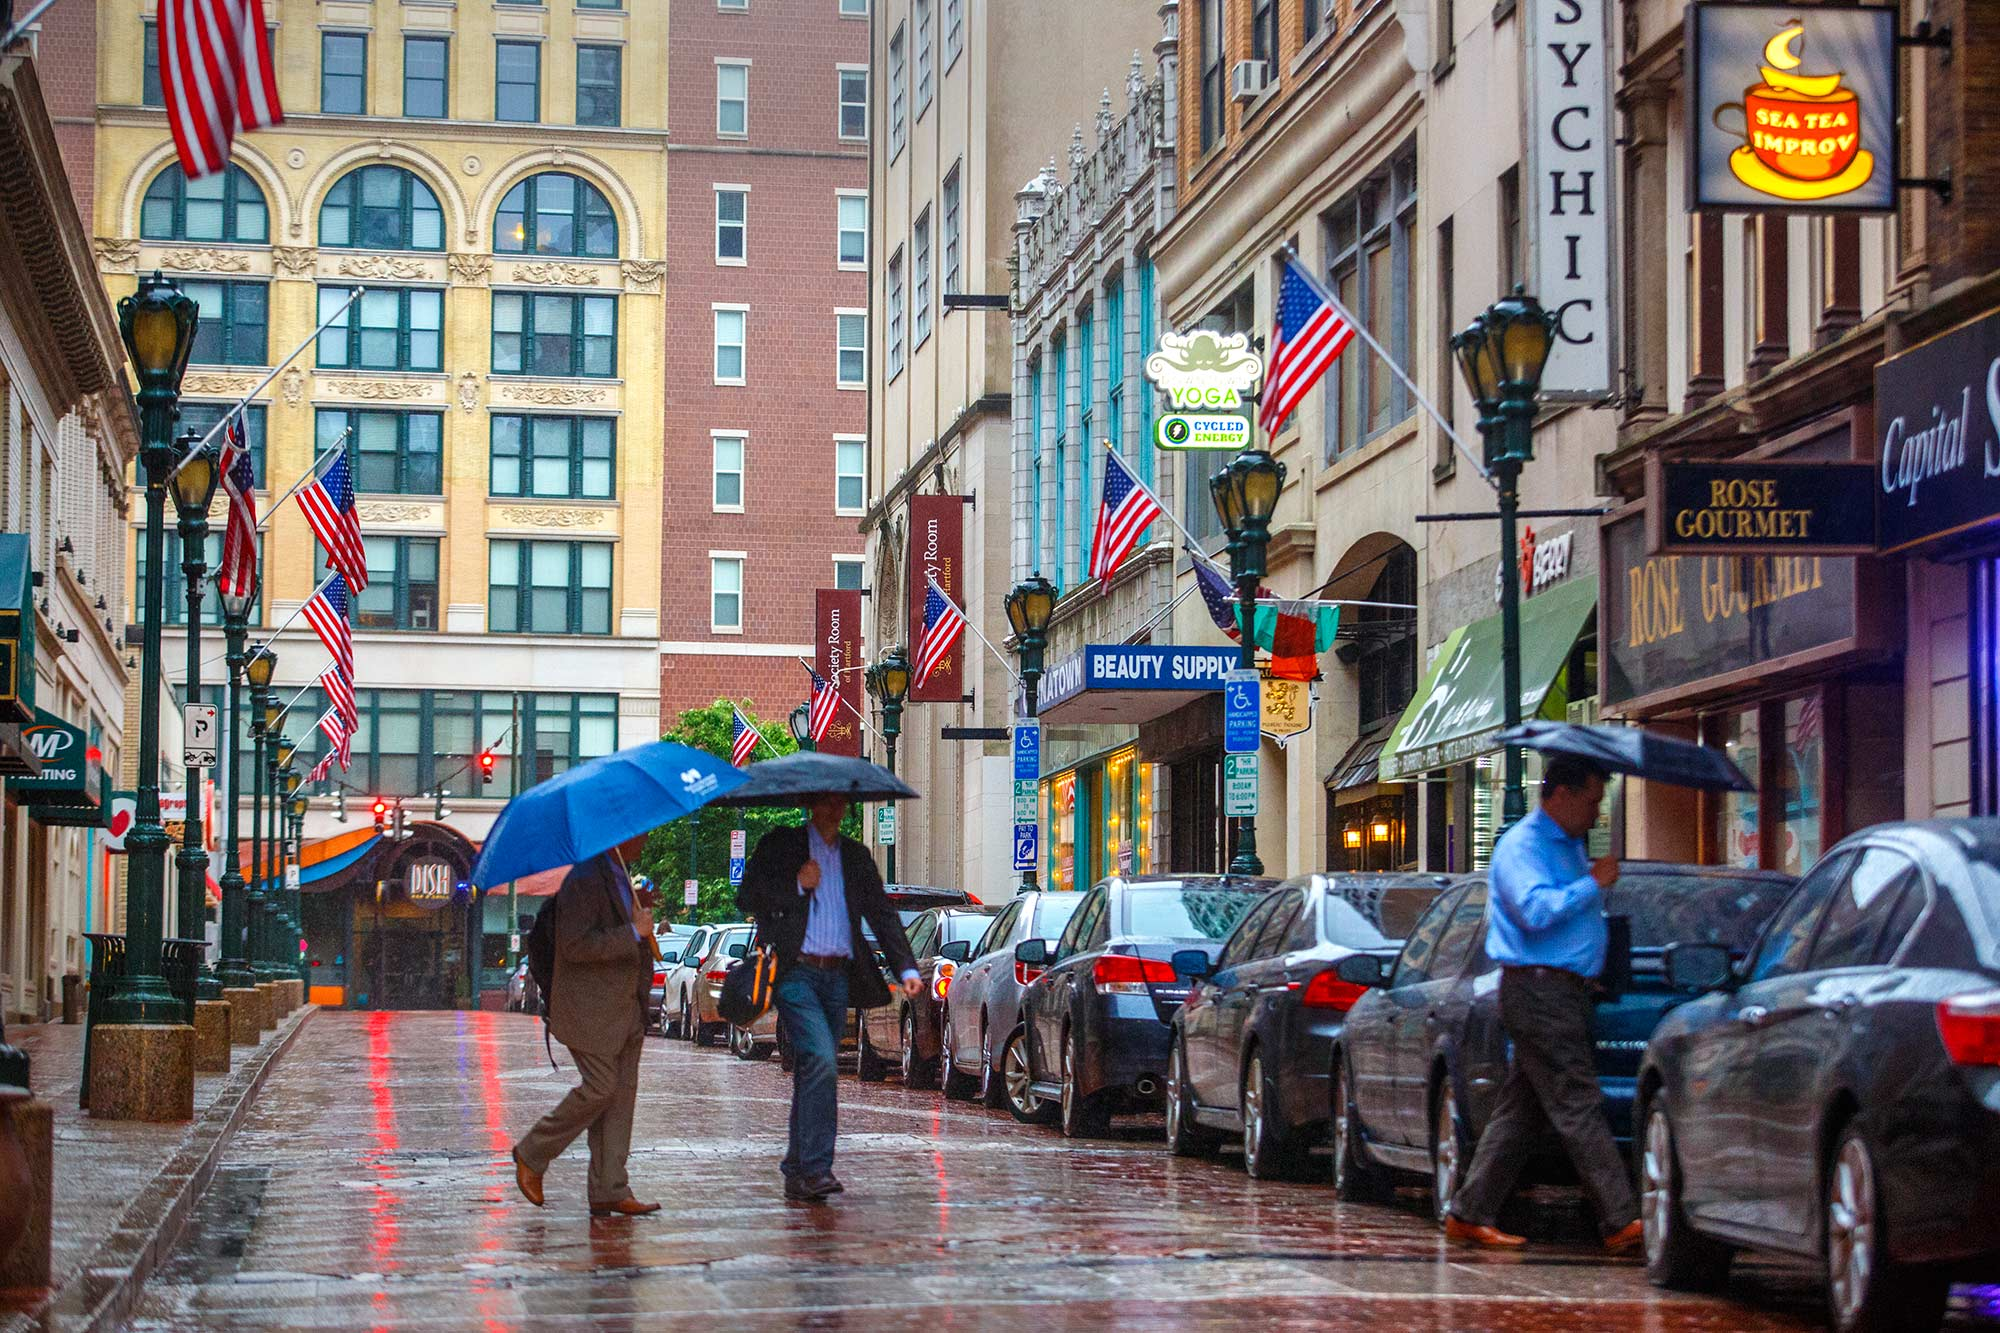 Rainy Pratt Street, Hartford, CT - 6/1/15